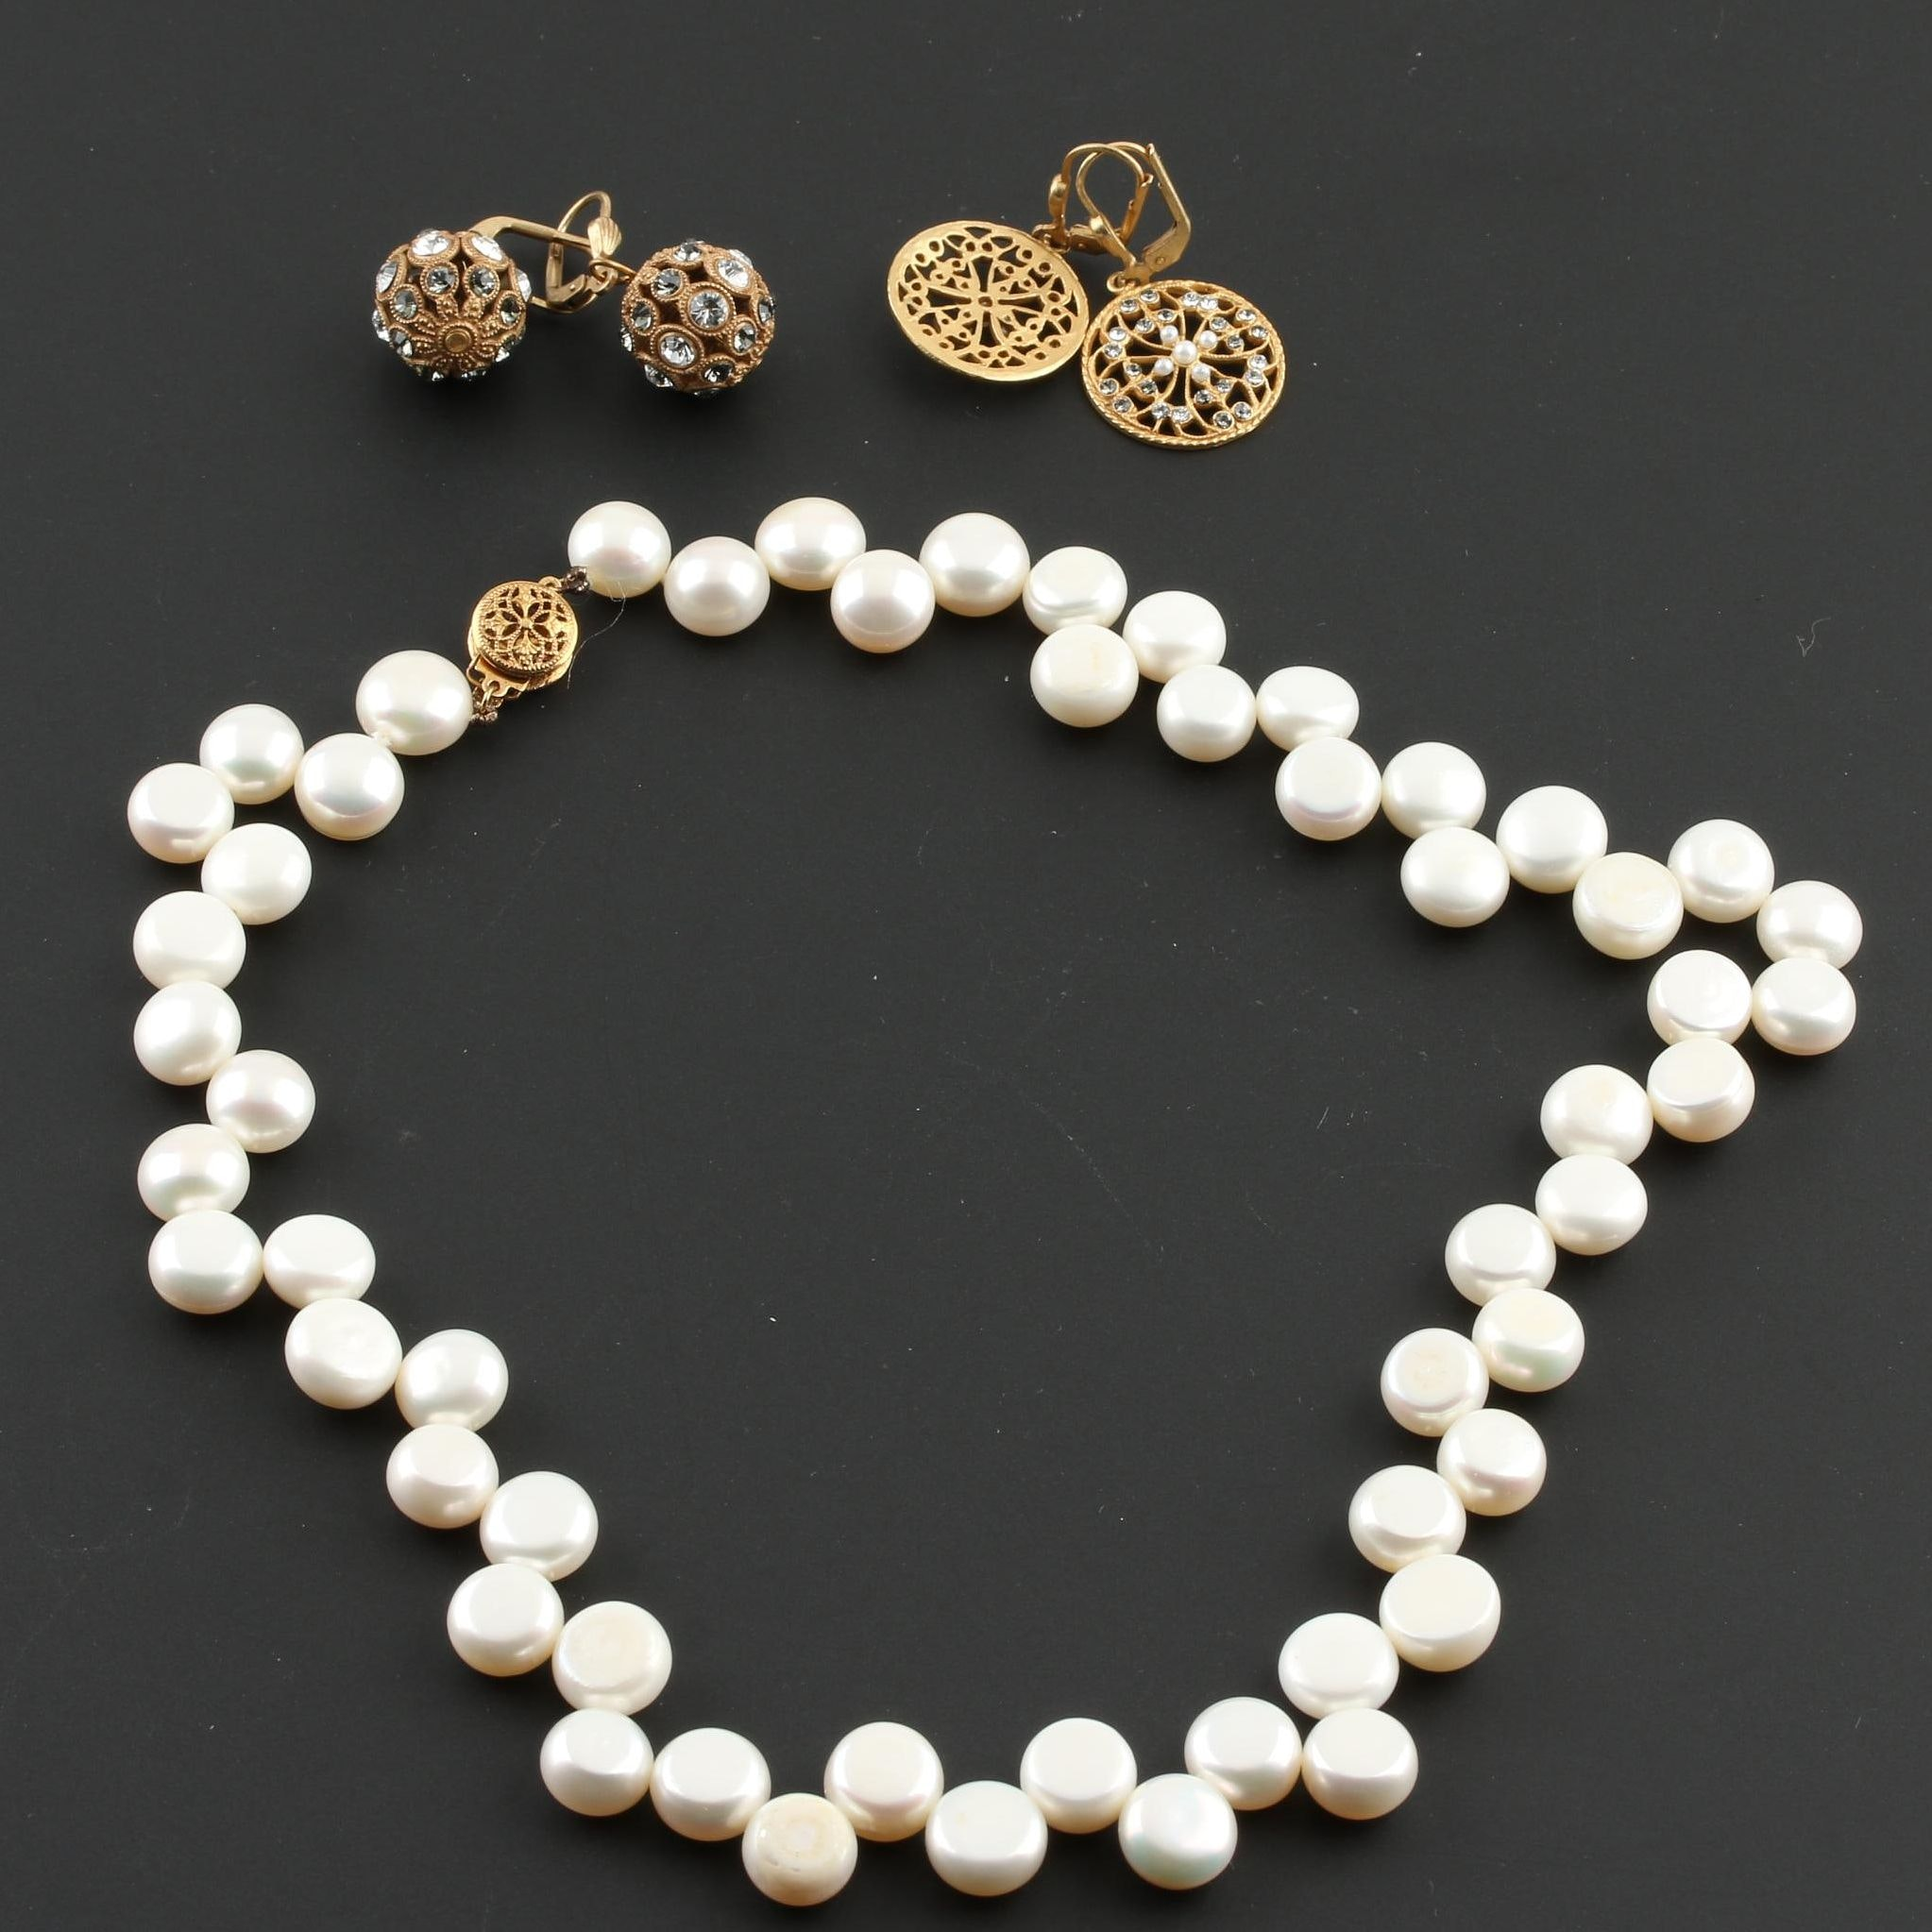 Costume Jewelry With Imitation and Cultured Pearls